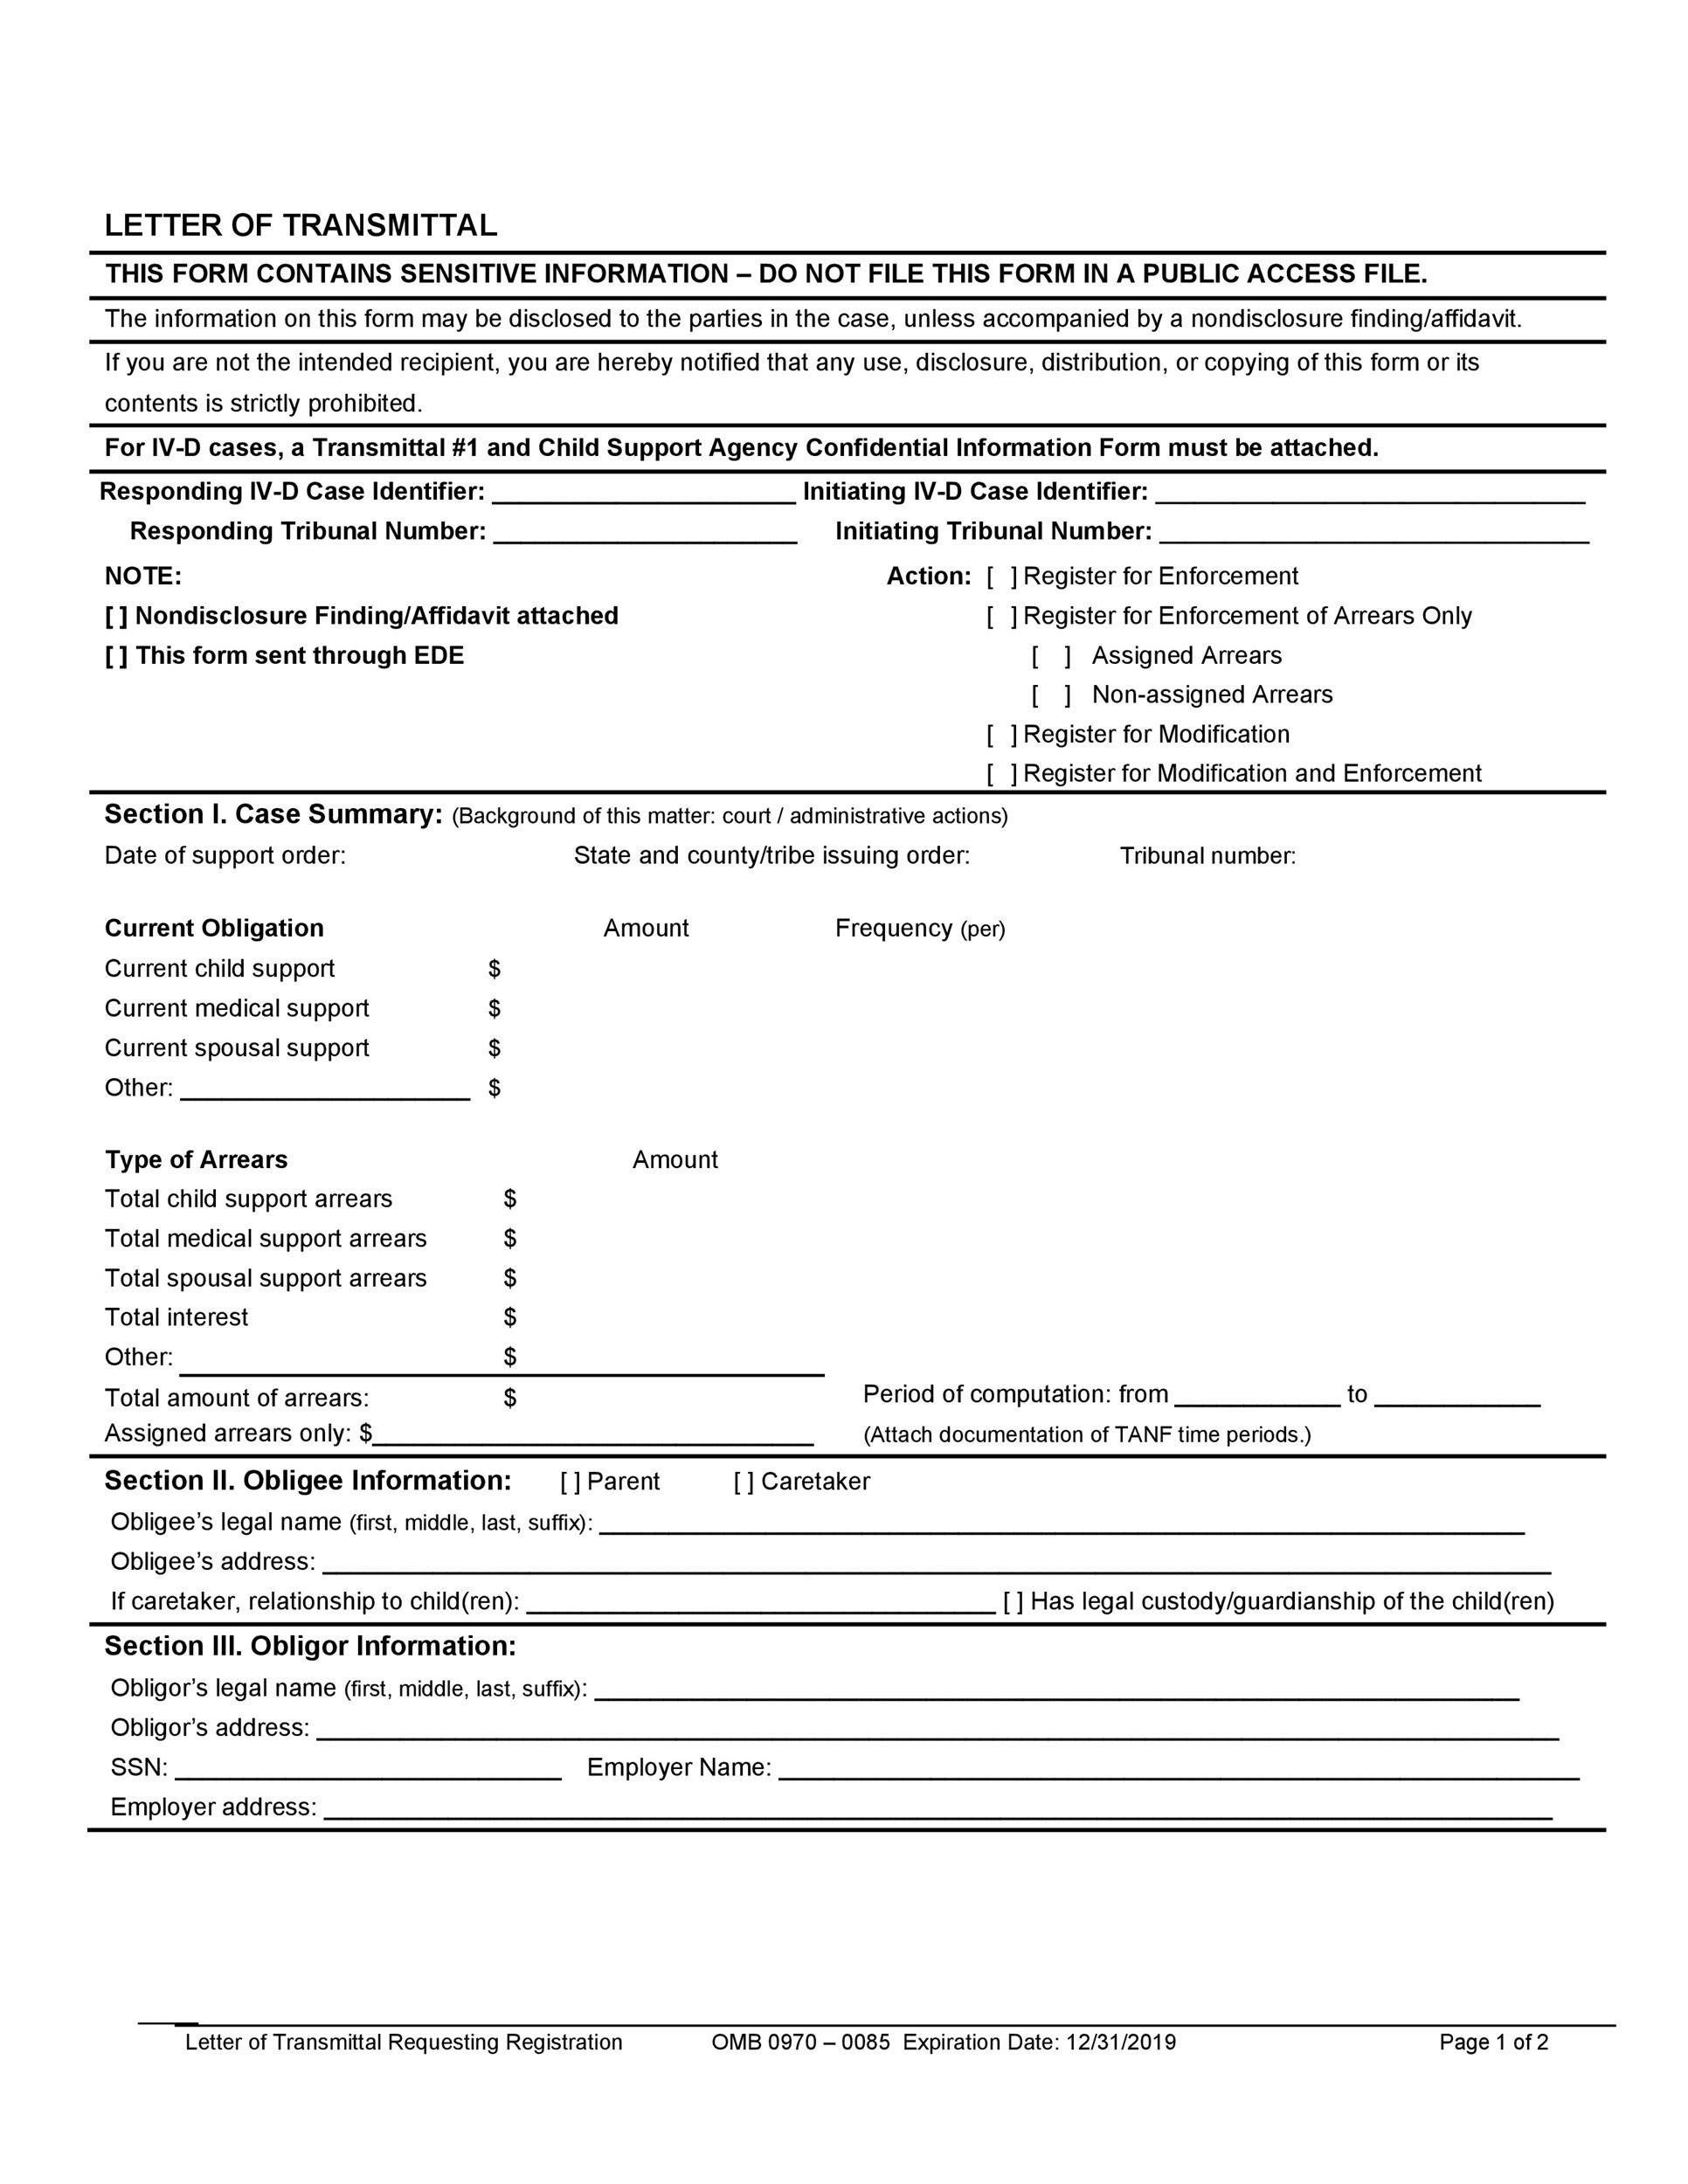 Letter of Transmittal - 40+ Great Examples  Templates - Template Lab